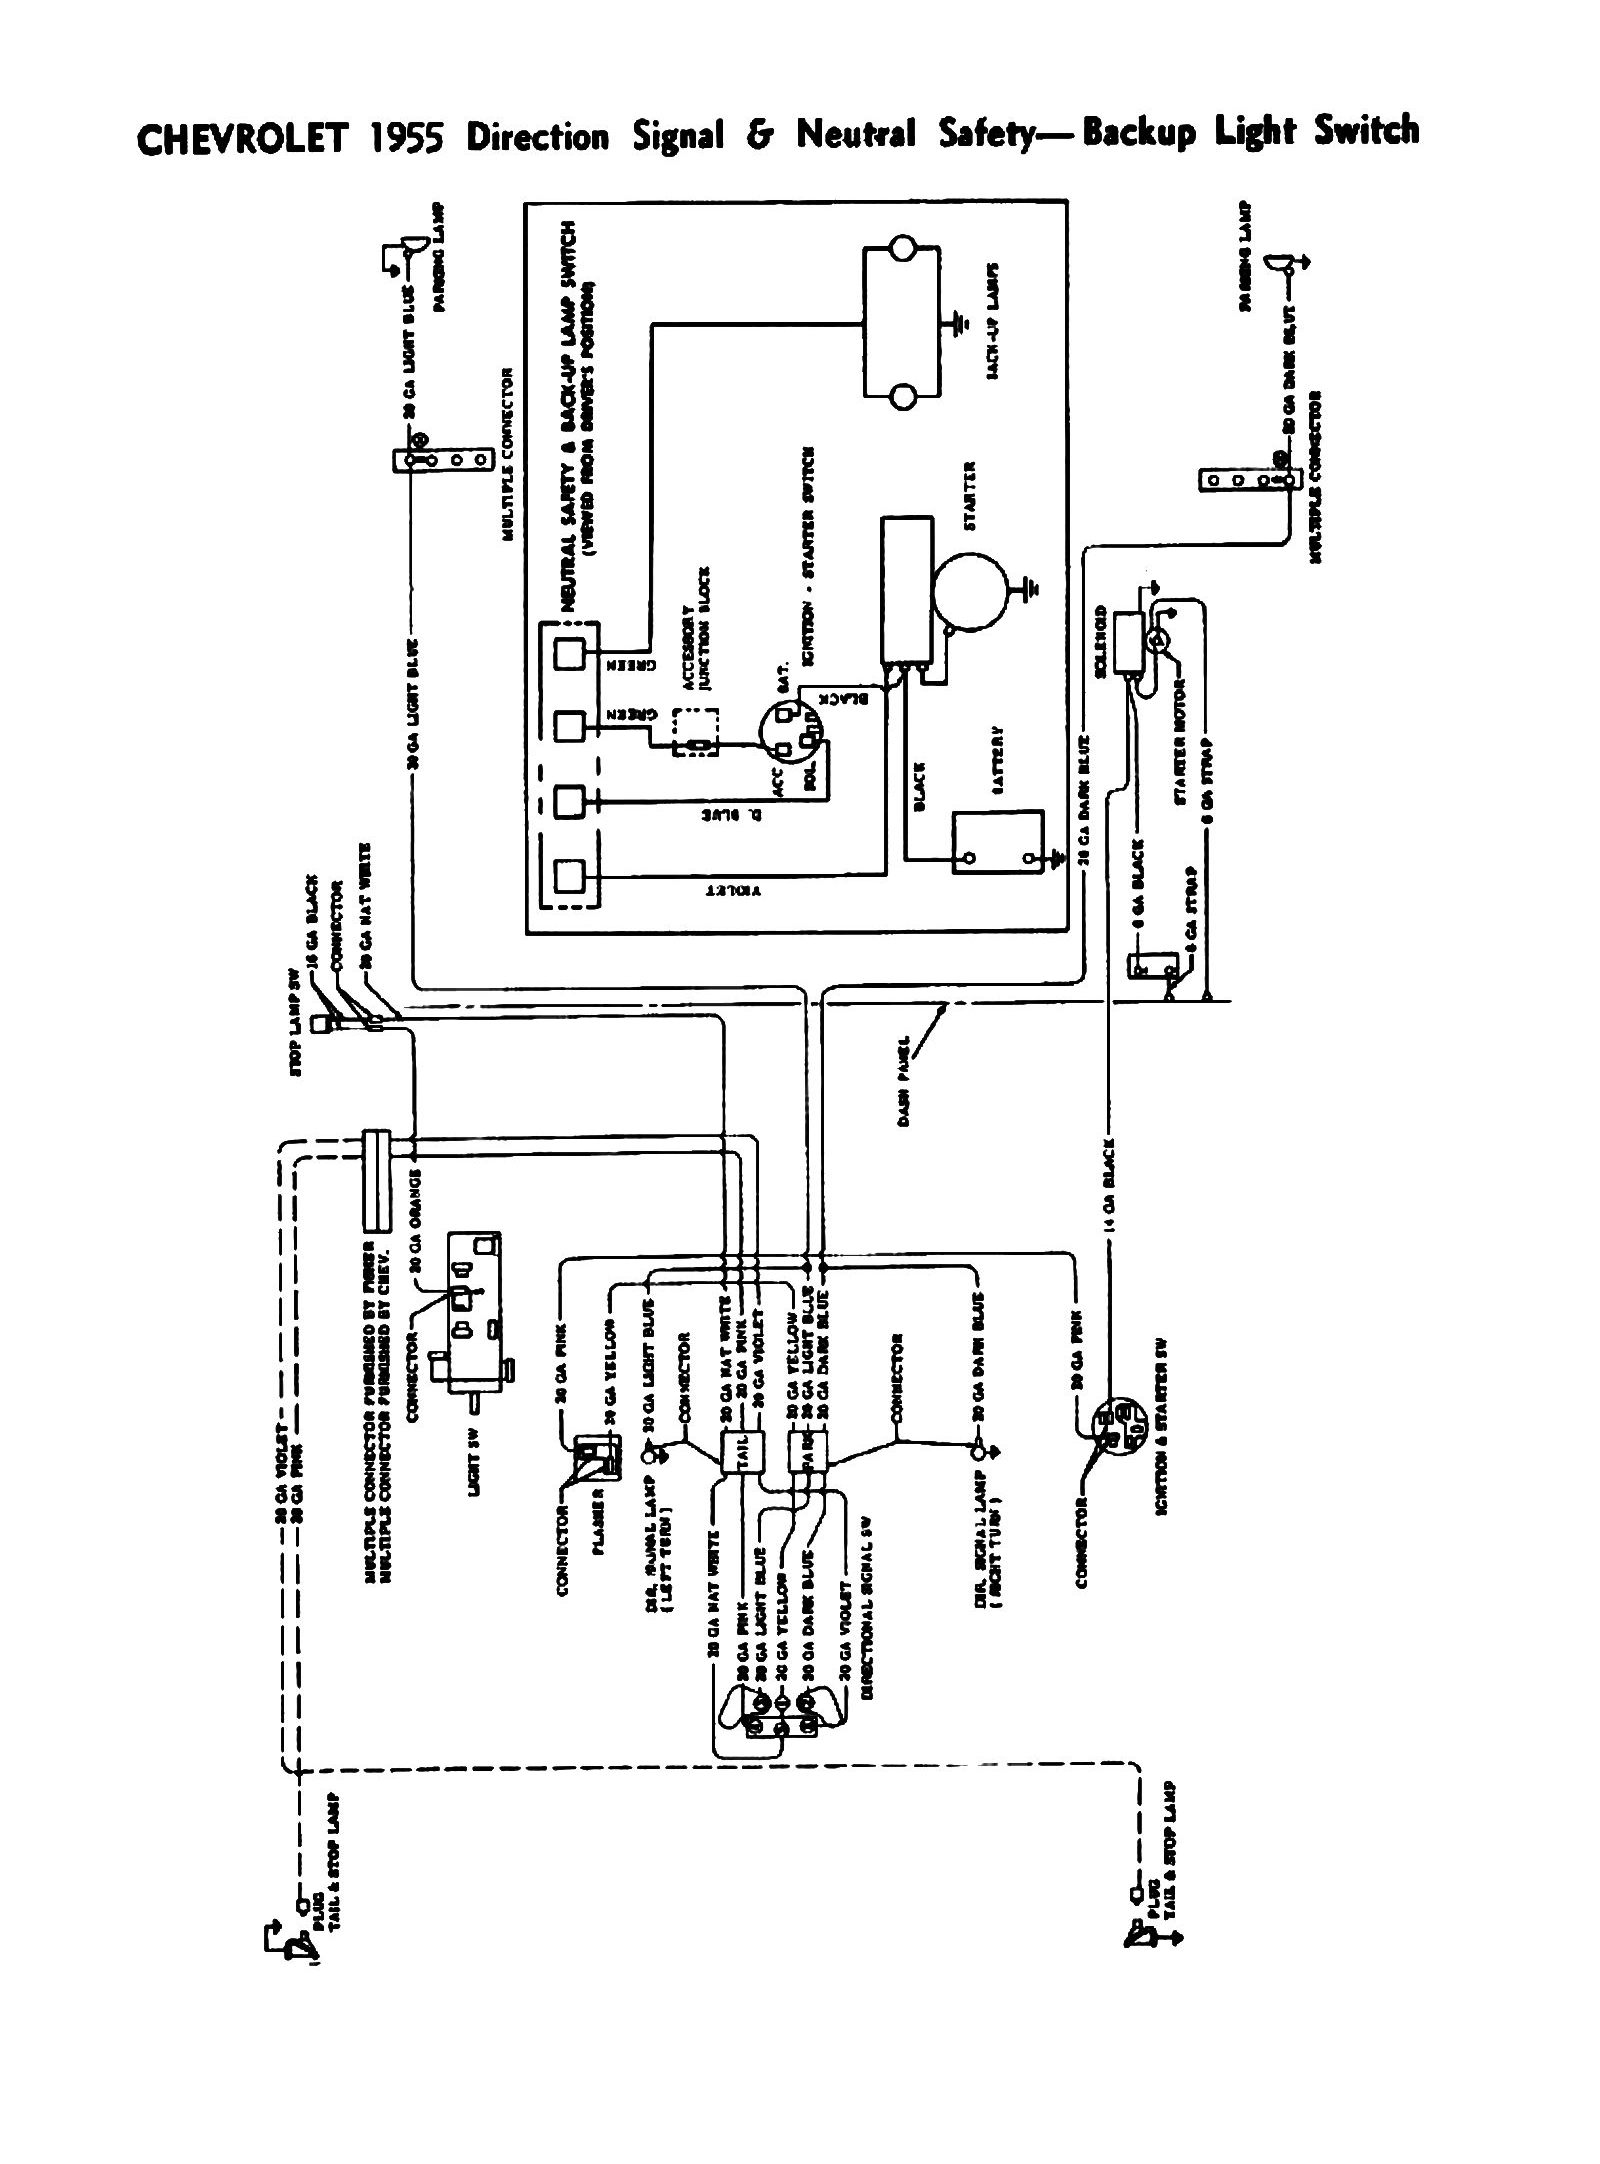 1955 2nd series chevy truck wiring diagram wiring diagram database international 8100 series wiring diagrams chevy wiring diagrams gm wiring harness diagram 88 98 1955 2nd series chevy truck wiring diagram